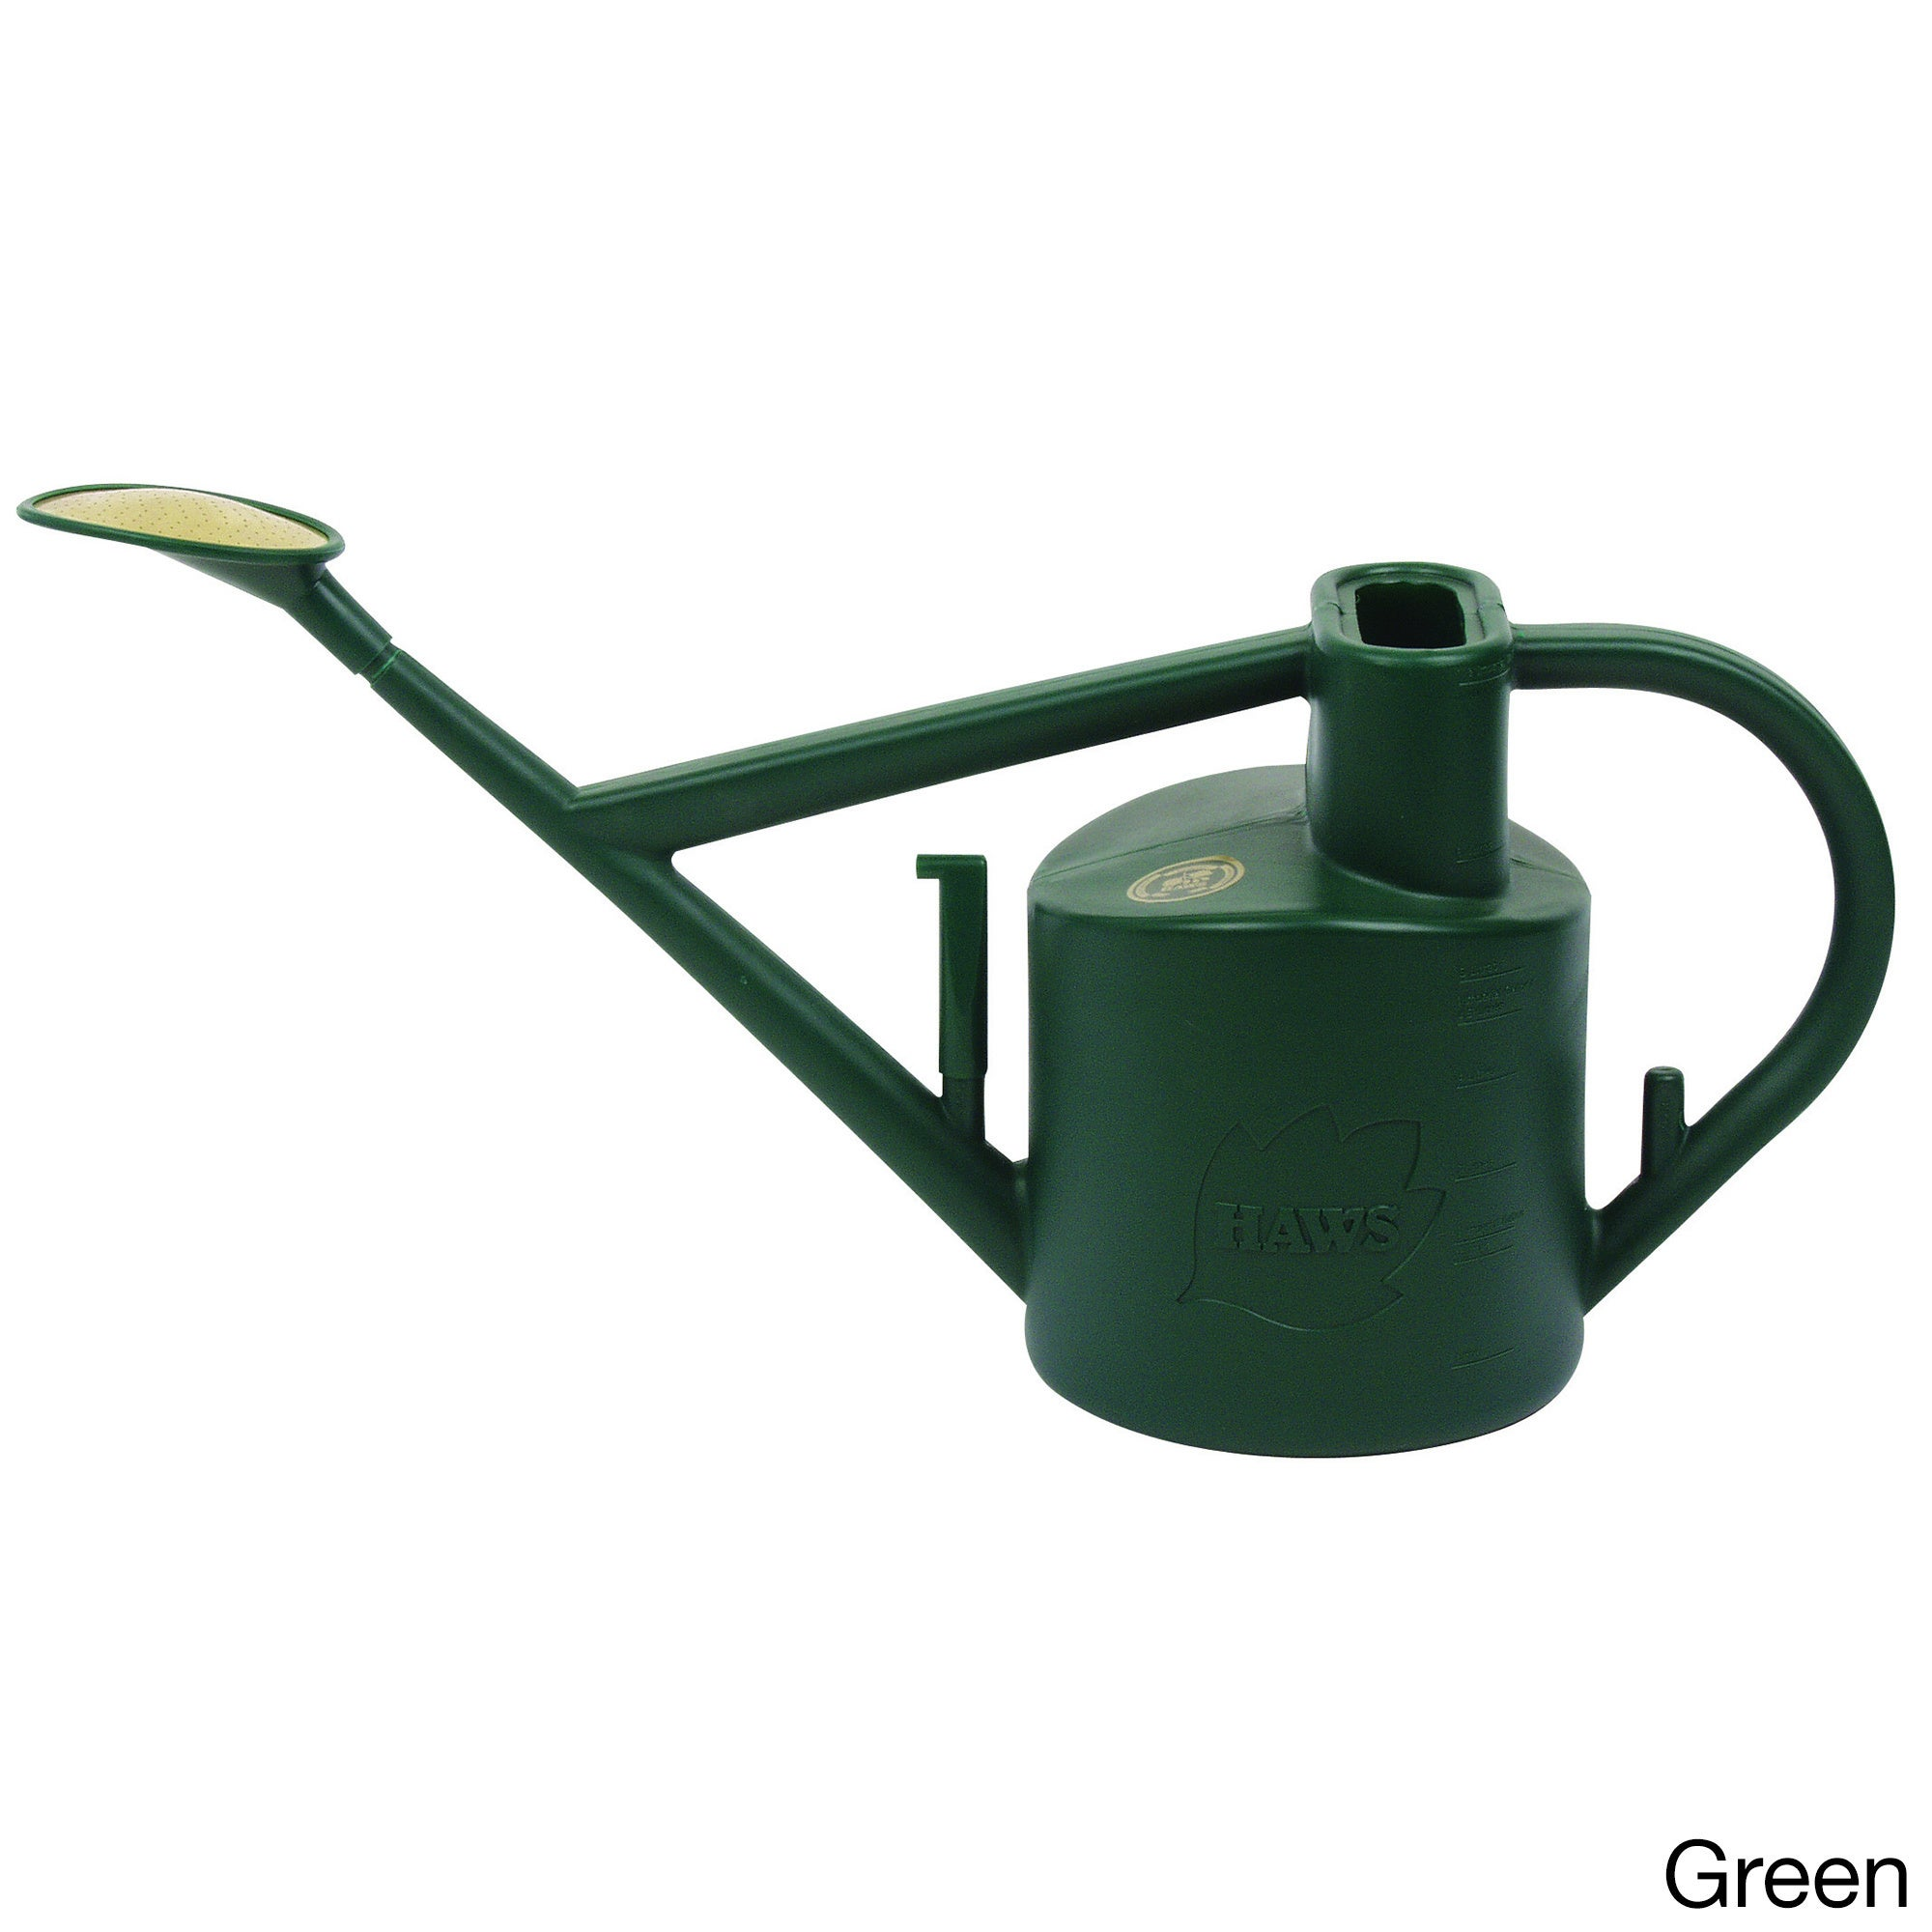 45oz//1.3L IMEEA/® Watering Can for Indoor House Plants Long Spout Brushed SUS304 Stainless Steel Watering Pot